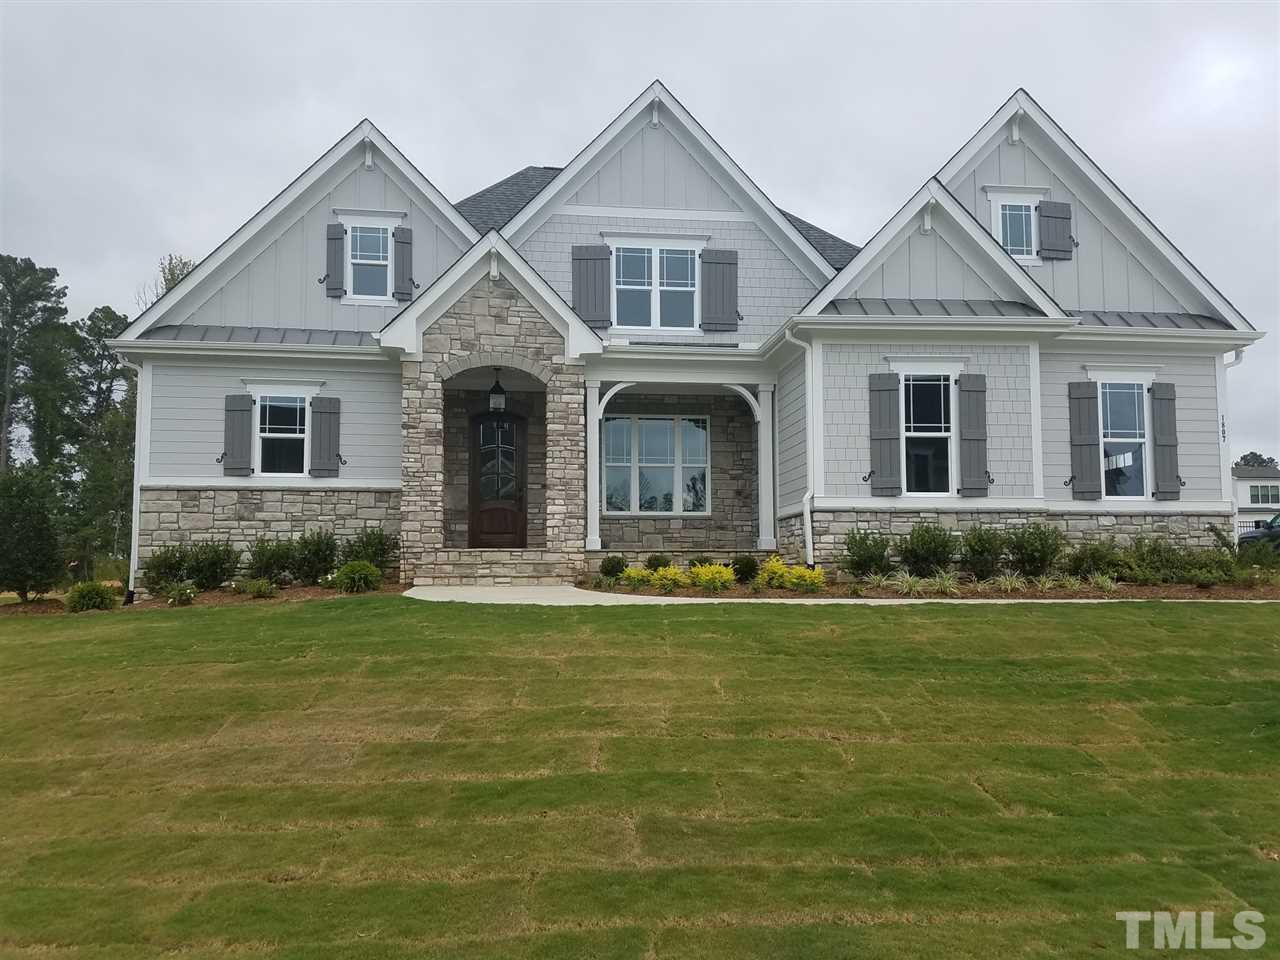 Custom built home by Gray Line Builders. 1st floor owners and guest suite. Owners has his and hers walk in closets, spa bath with free standing tub, walk in shower. foyer opens up to huge family room open to kit and breakfast area.  Kit with custom cabinets quartz counter tops and huge center island. Commercial grade appliances. 3 car garage.  2 bdrms on 2nd floor and large bonus room.  all bedrooms have private baths and walk in closets.  Screen porch has FP and opens to large level rear yard.